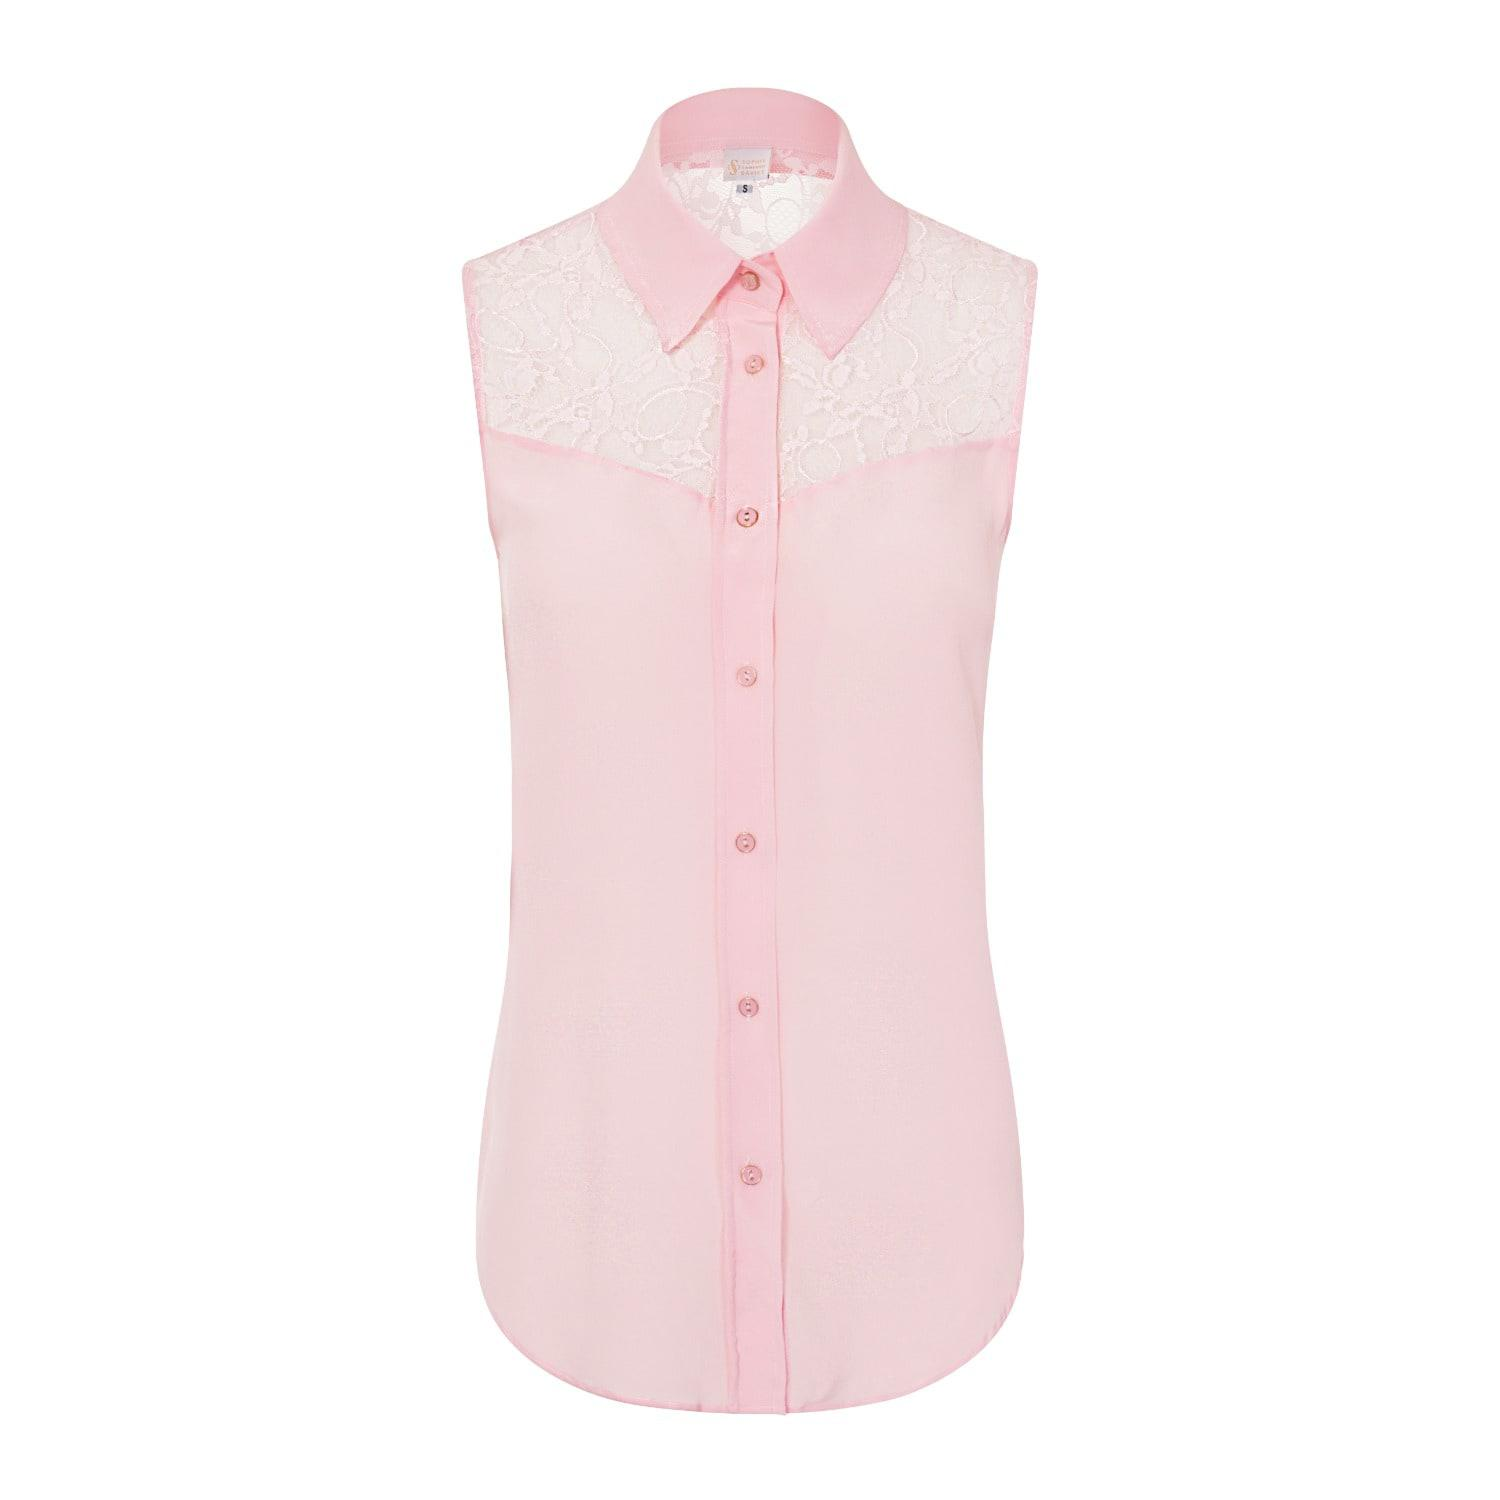 bc8ee24e029501 Lyst - Sophie Cameron Davies Pale Pink Silk Classic Top in Pink